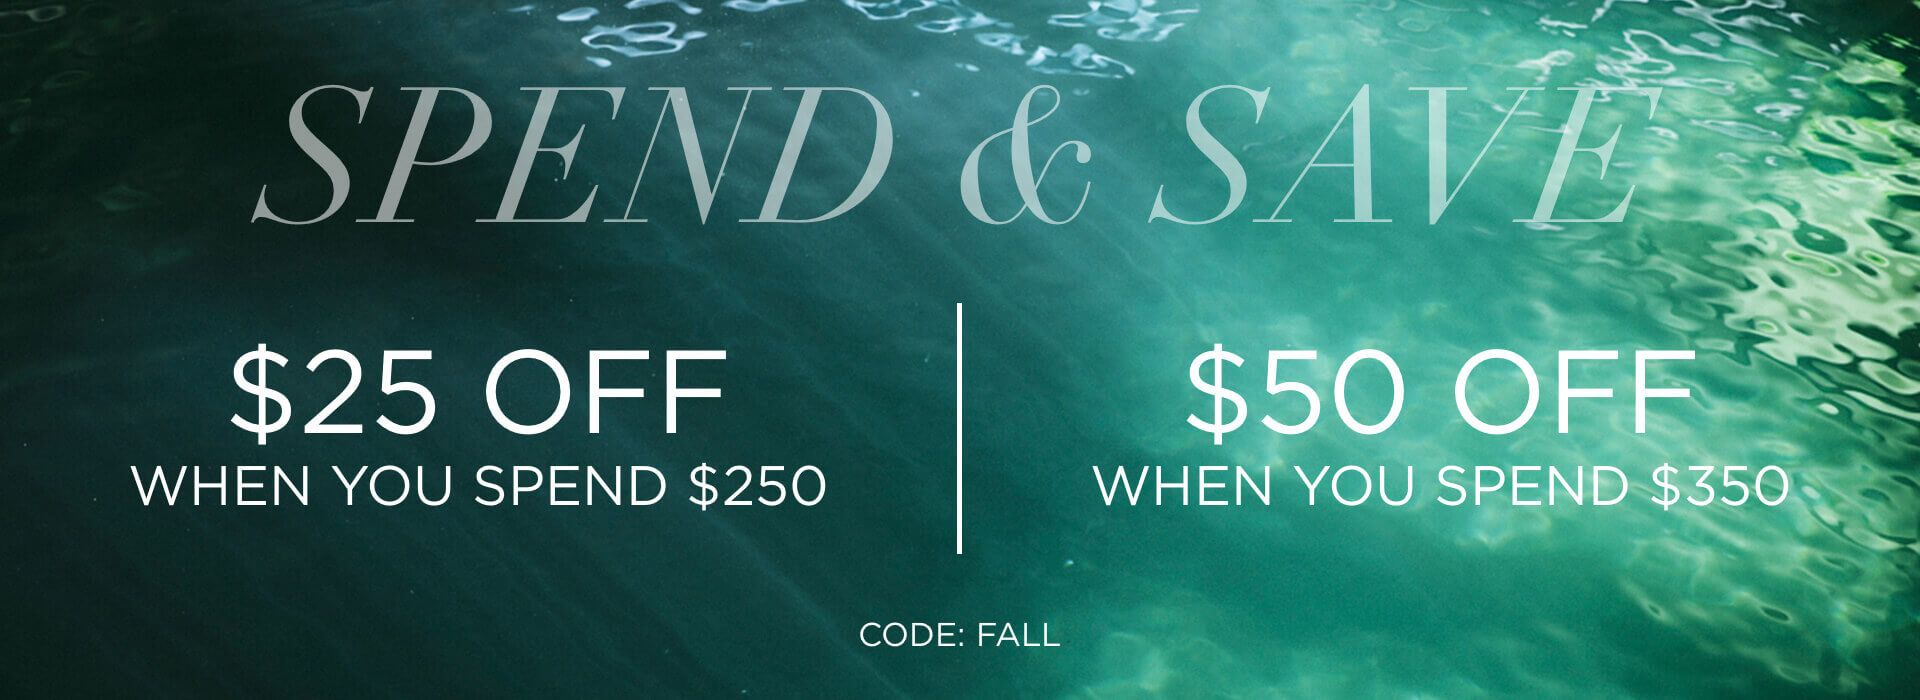 Spend & Save $25 off when you spend $250 and $50 off when you spend $350